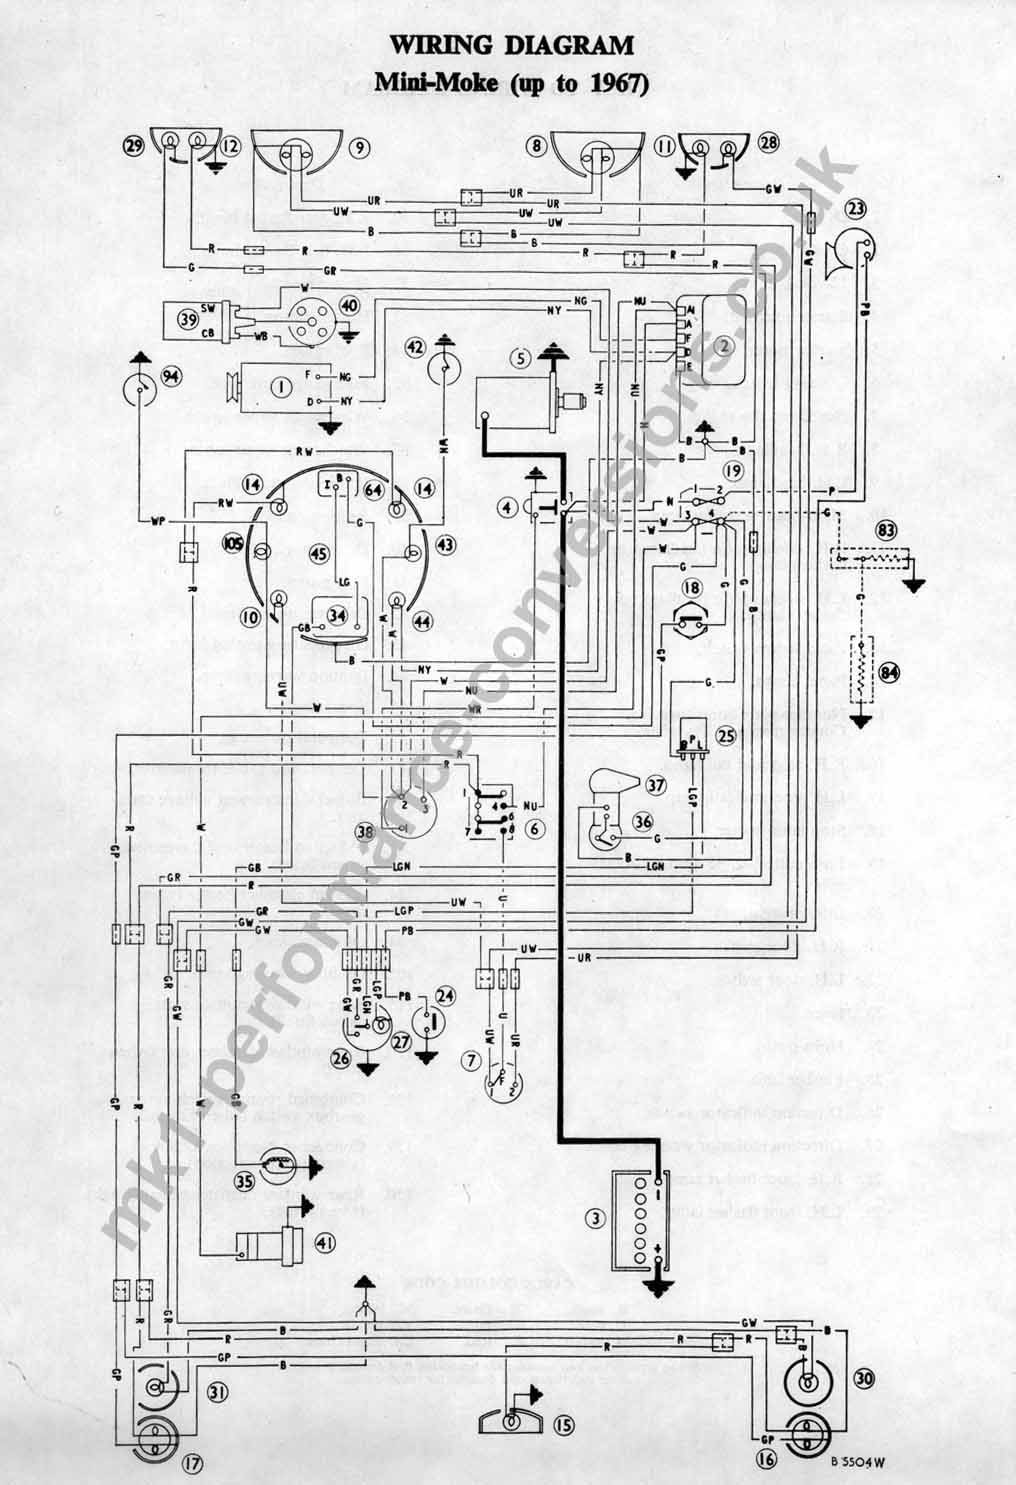 mk1_moke_wiring technical (electrical) escort mk1 wiring diagram at crackthecode.co